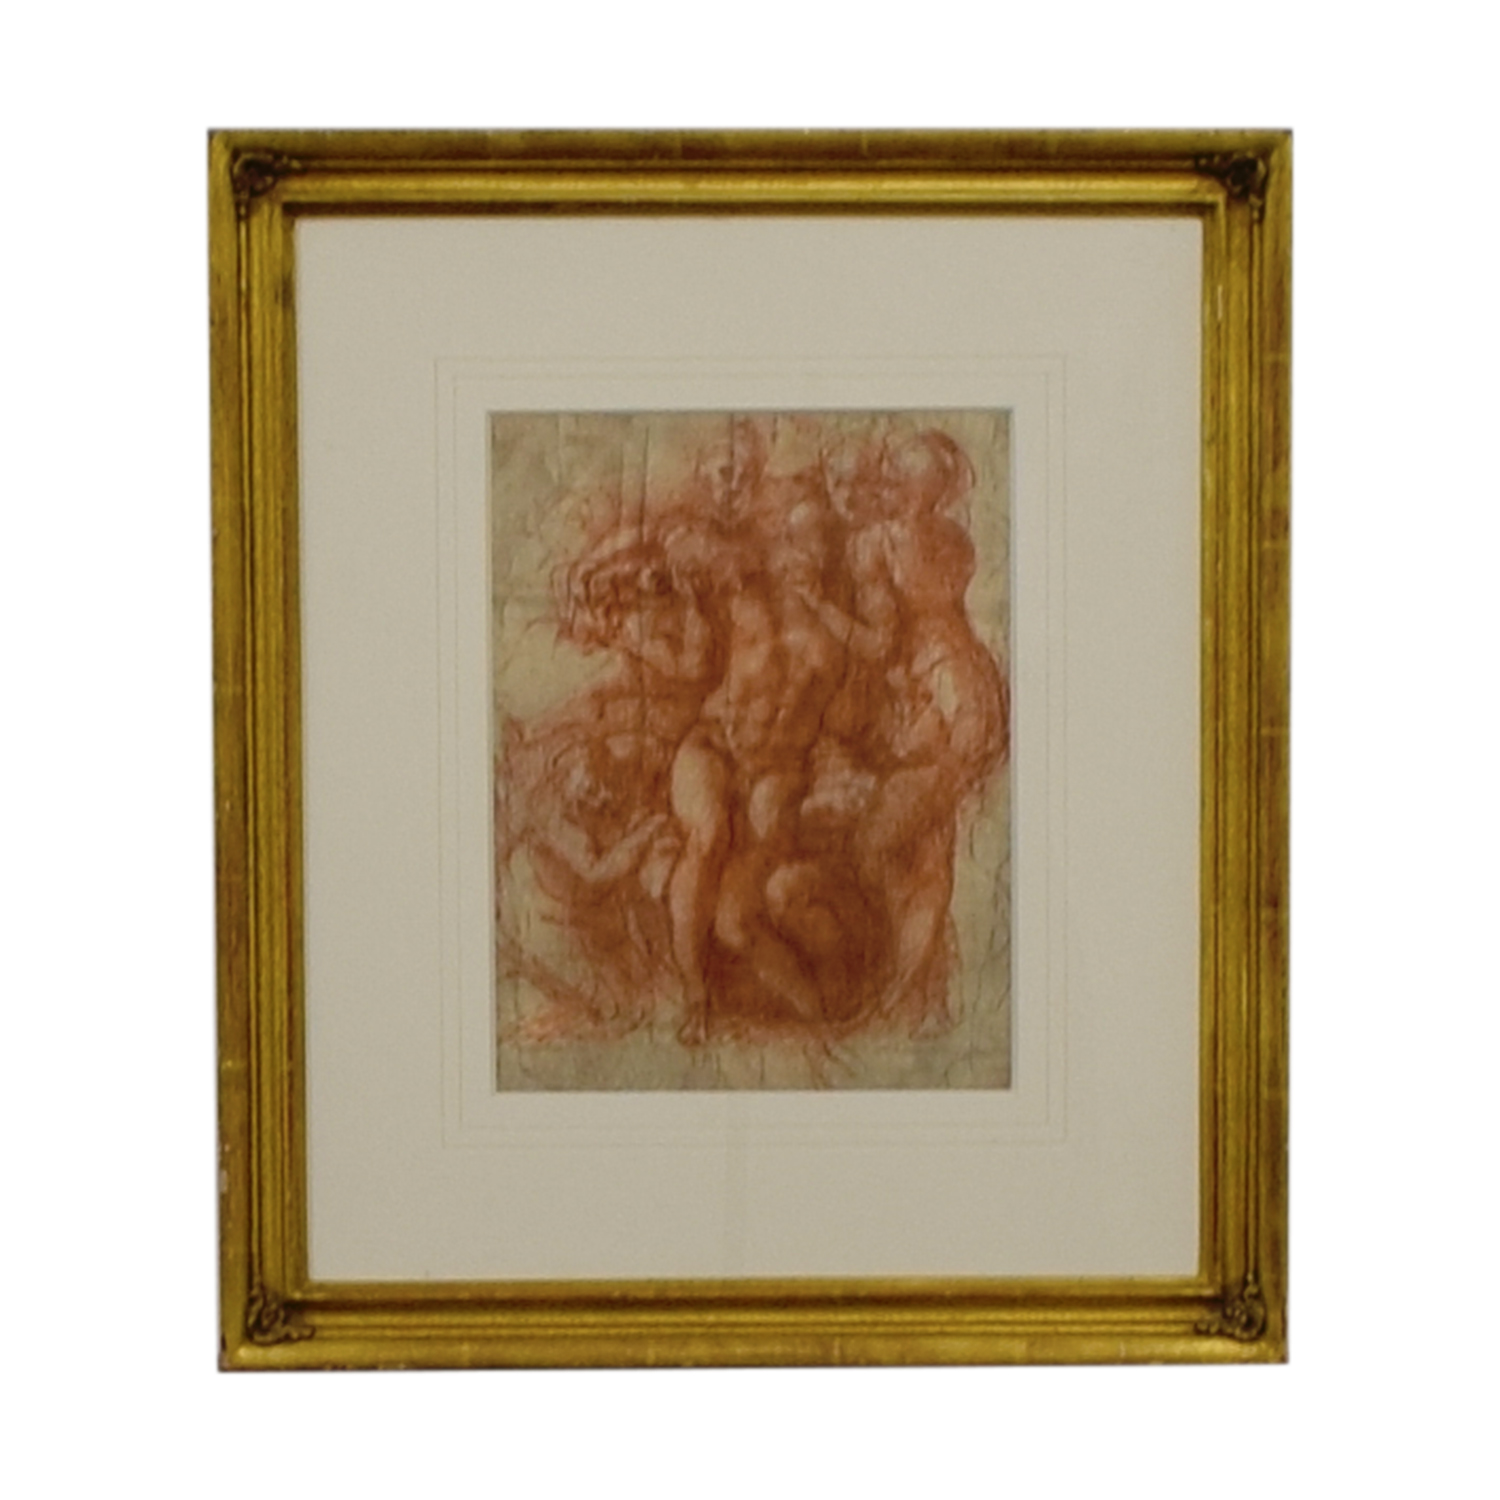 buy Nude Sketch in Gold Frame Artwork  Decor